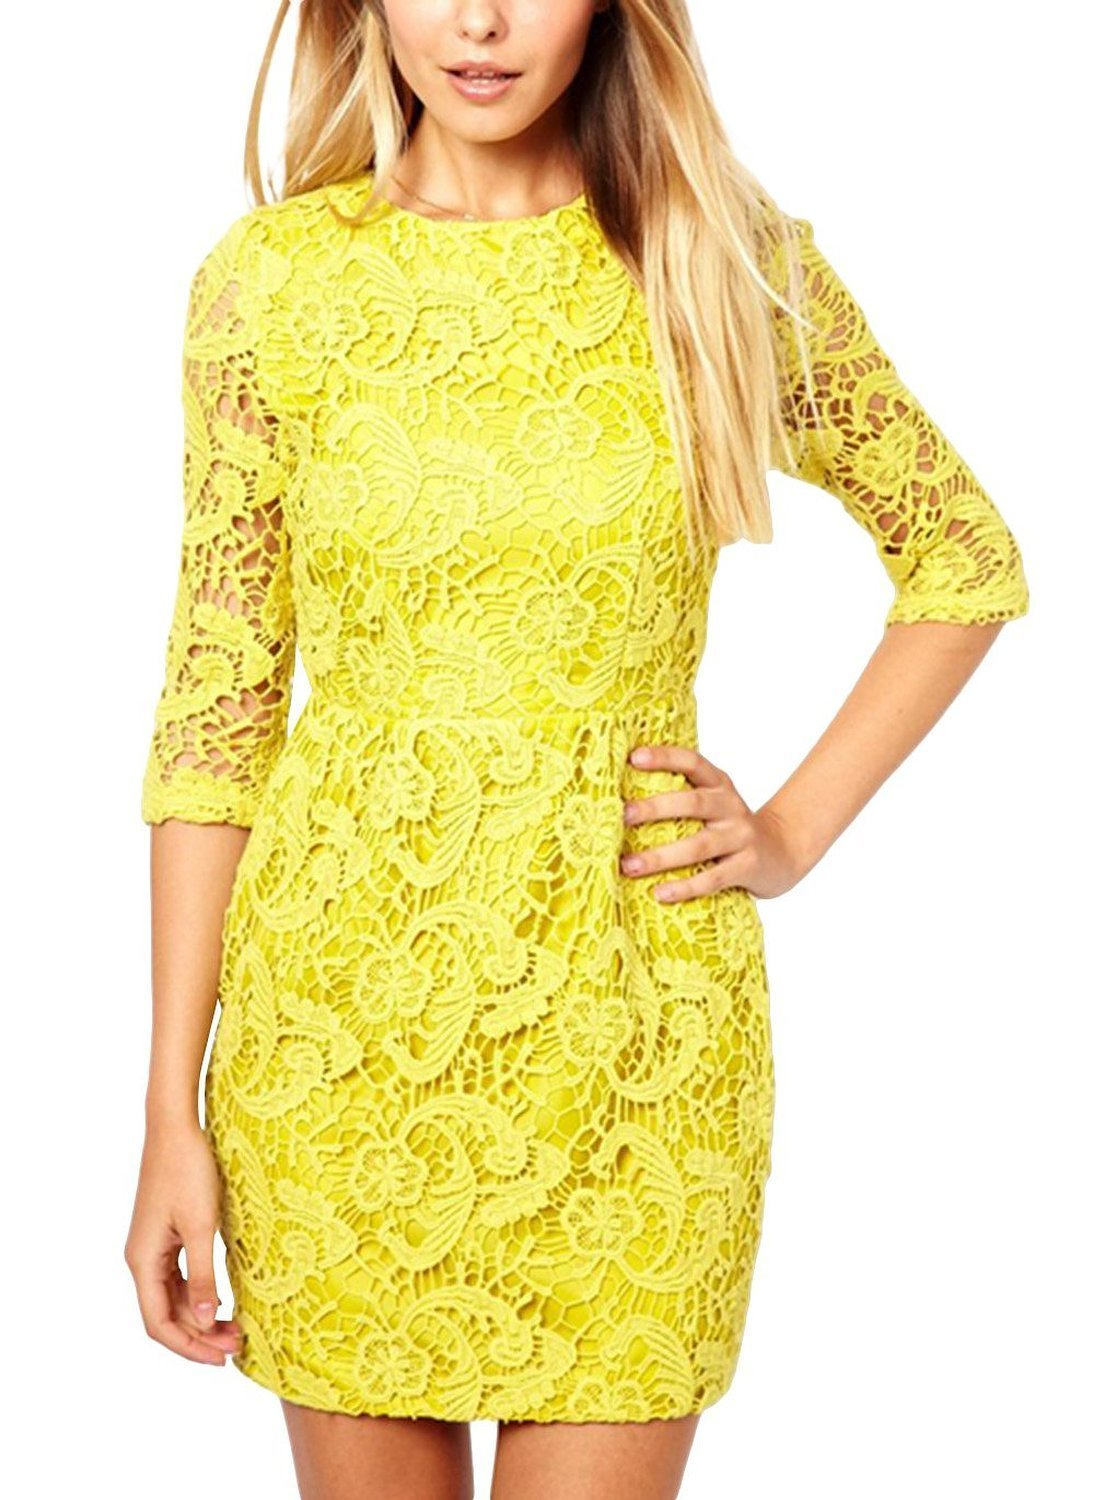 JINSEY + Lace Hollow Out Sexy Open Back Cocktail Party Short Dress Yellow L